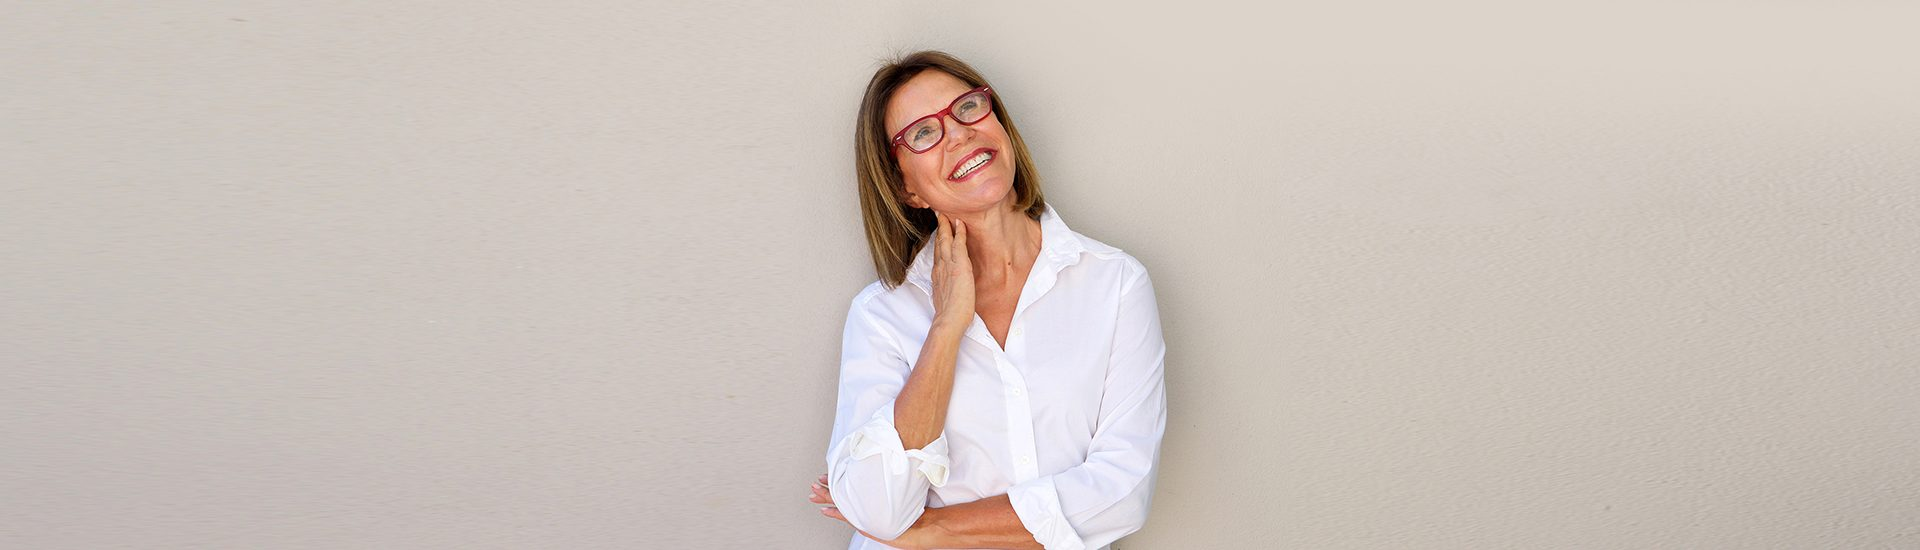 Getting Dental Implants for Your Missing Teeth